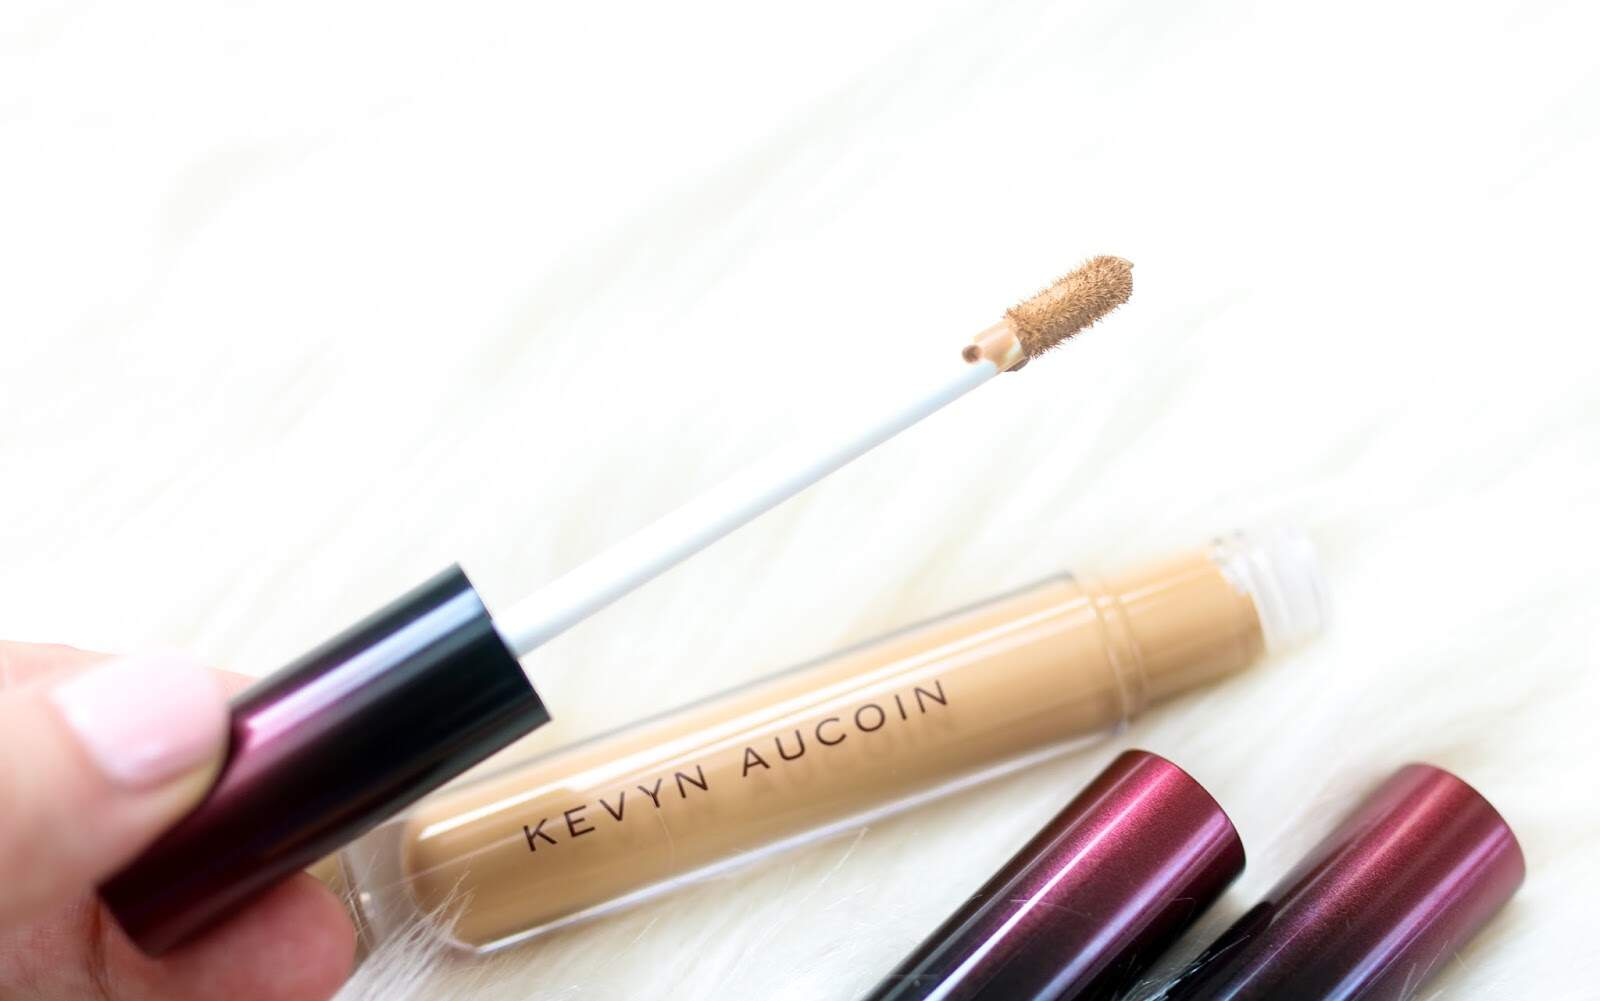 Corretivo The Etherealist Super Natural KEVYN AUCOIN